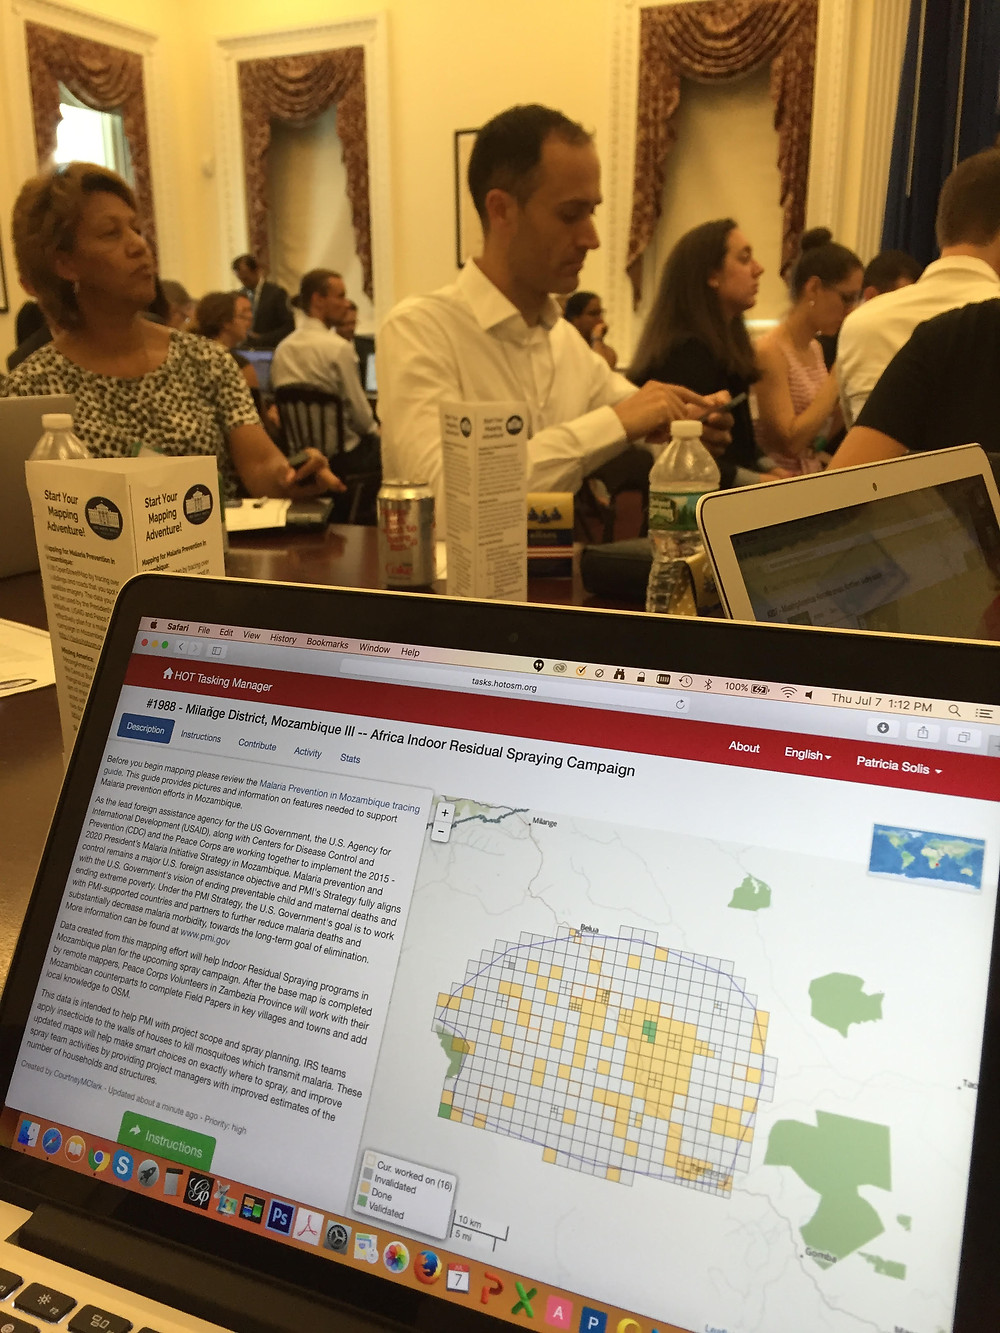 HOT Tasking Manger of the White House Mapathon mapping task. HOTOSM Executive Director, Tyler Redford watches in the background.